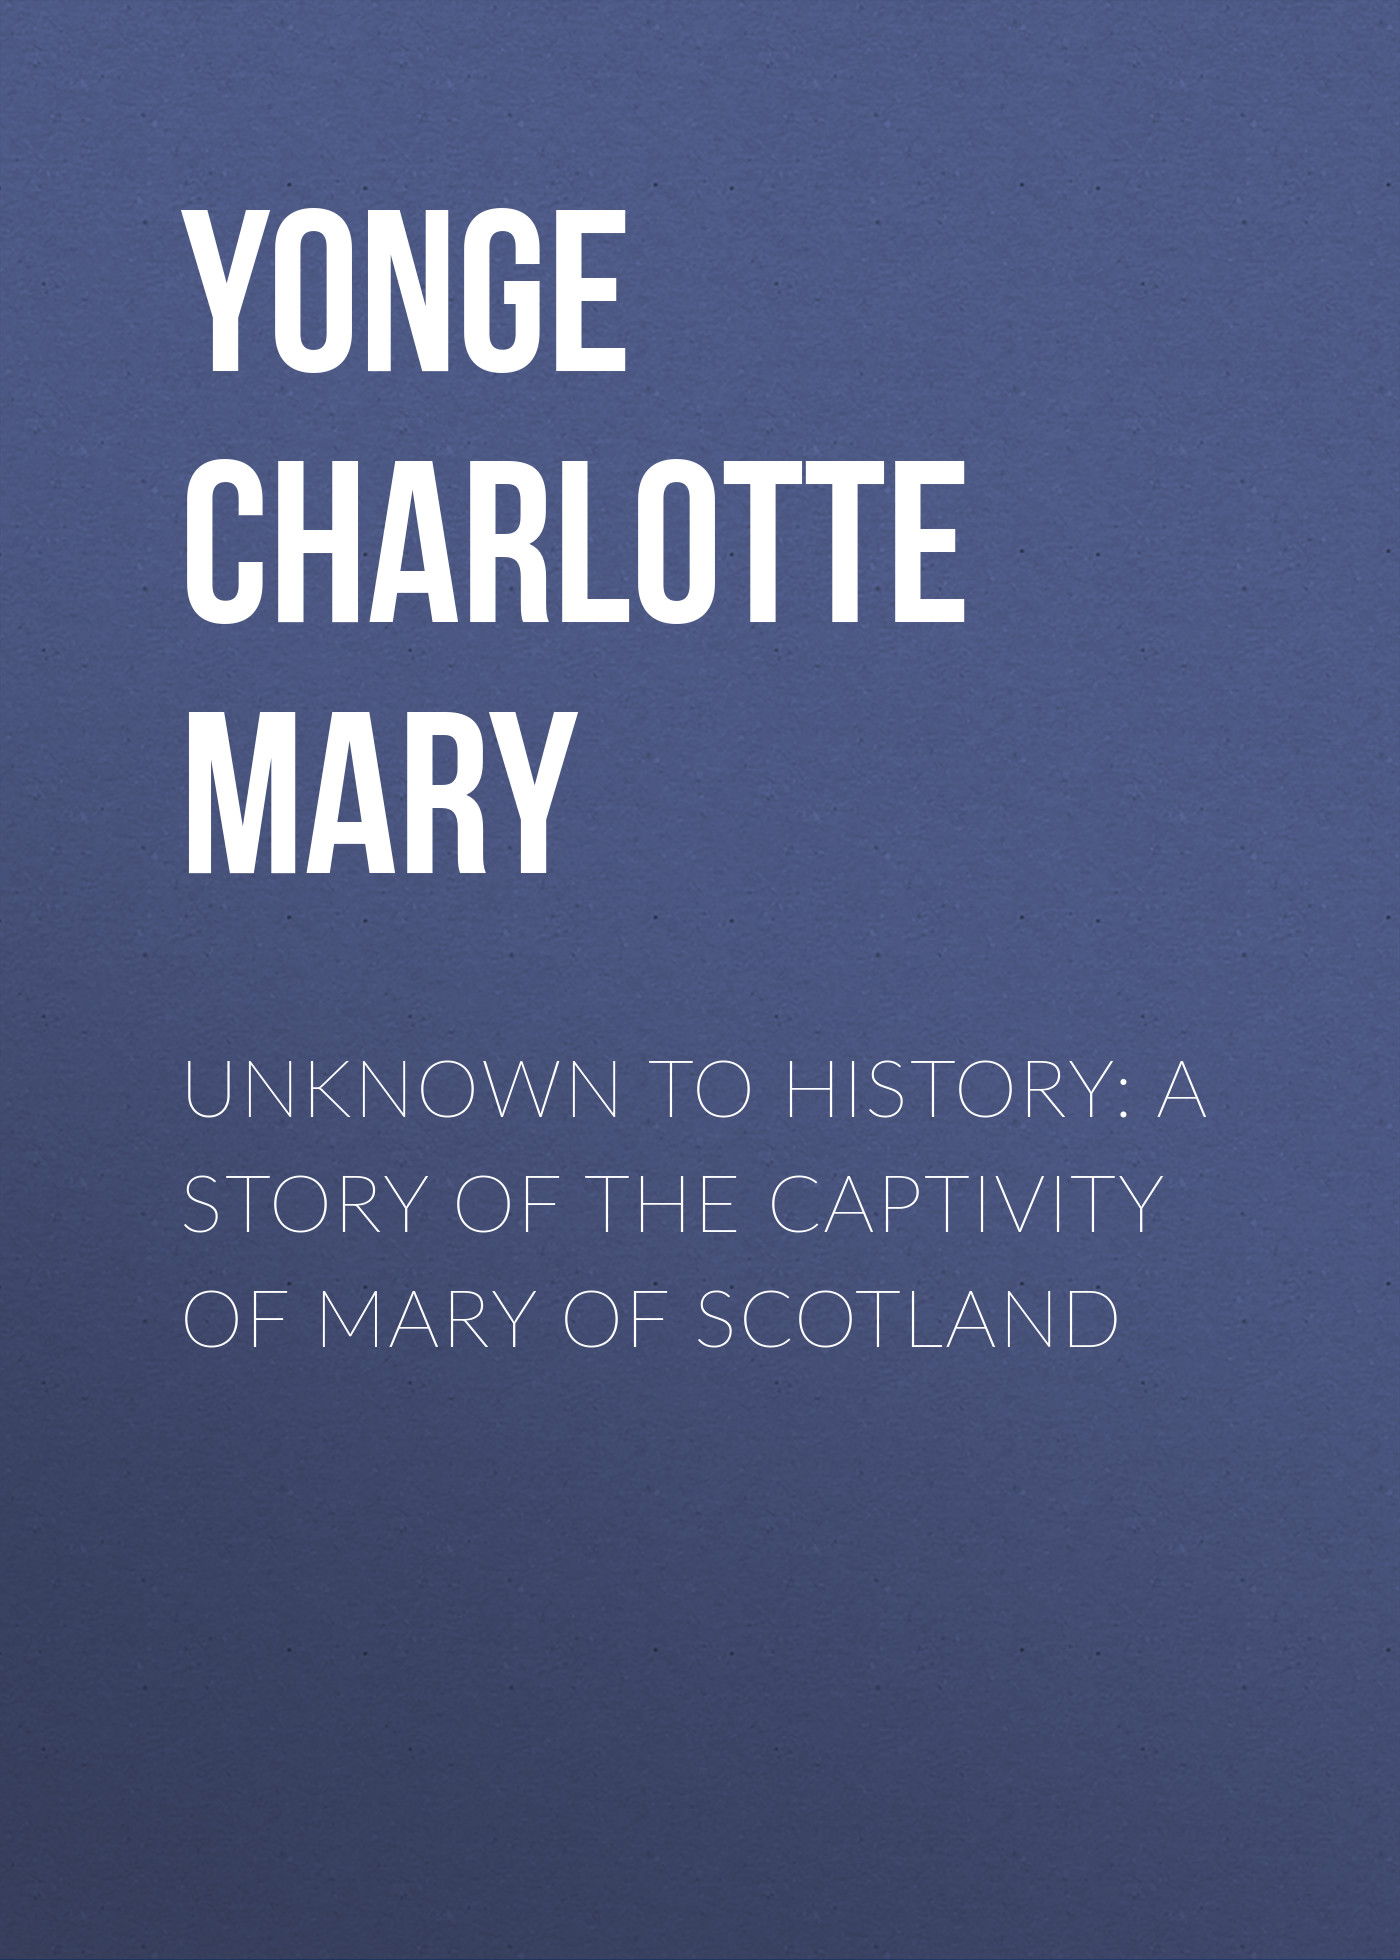 Yonge Charlotte Mary Unknown to History: A Story of the Captivity of Mary of Scotland yonge charlotte mary history of france